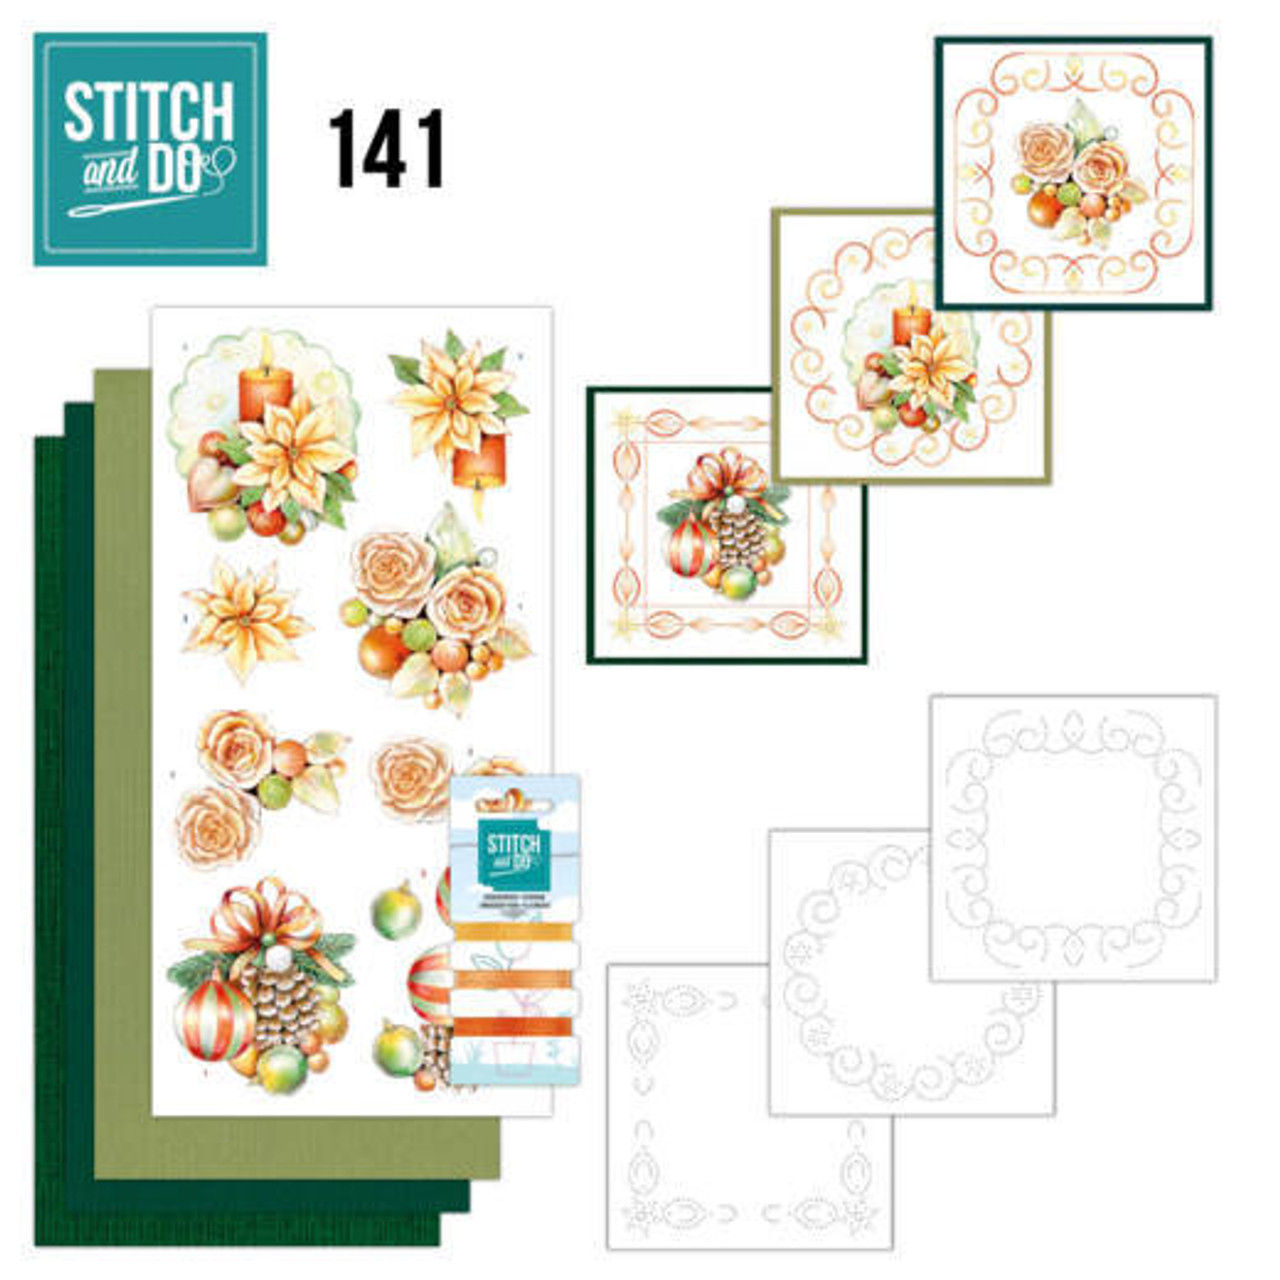 Stitch and Do 141 - Card Embroidery Kit -Salmon Christmas Baubles